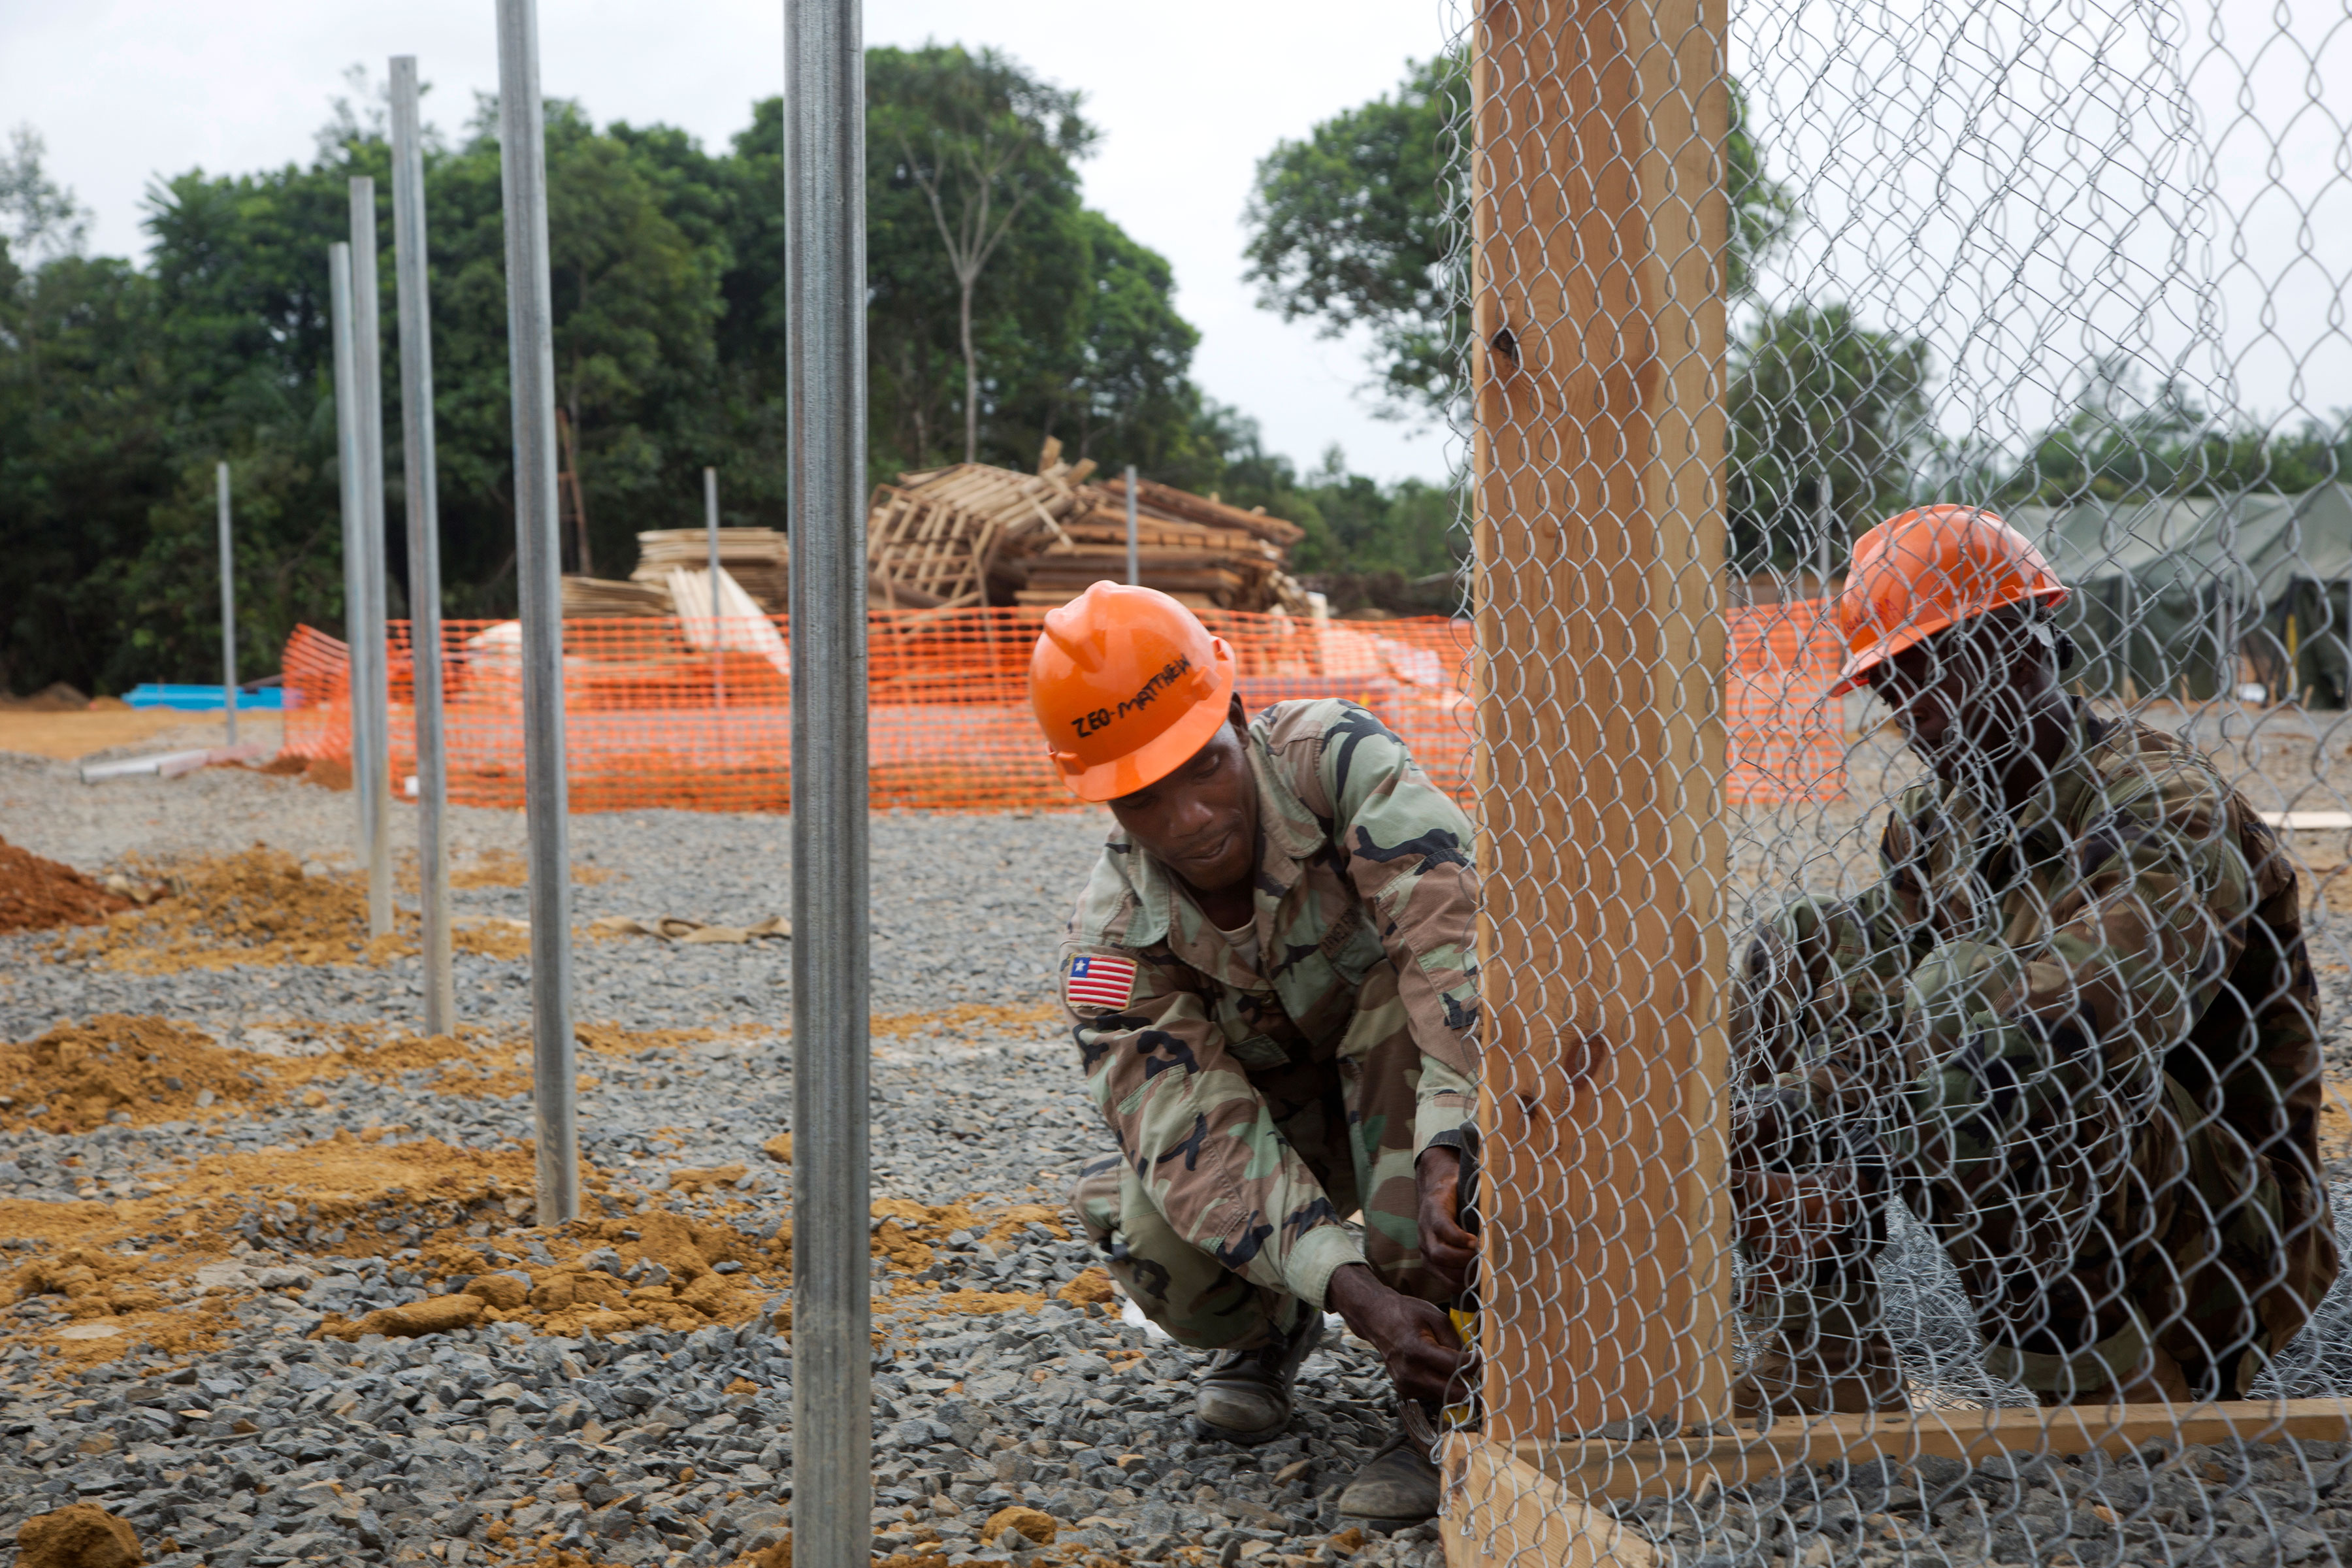 Liberian Soldiers attach fencing at an Ebola treatment unit being built in support of Operation United Assistance in Gbediah, Liberia, in December 2014. United Assistance was the DOD operation to provide command and control, logistics, training and engineering support to U.S. Agency for International Development-led efforts to contain the Ebola virus outbreak in West Africa. (U.S. Army photo by Sgt. 1st Class Brien Vorhees, 55th Signal Company (Combat Camera))